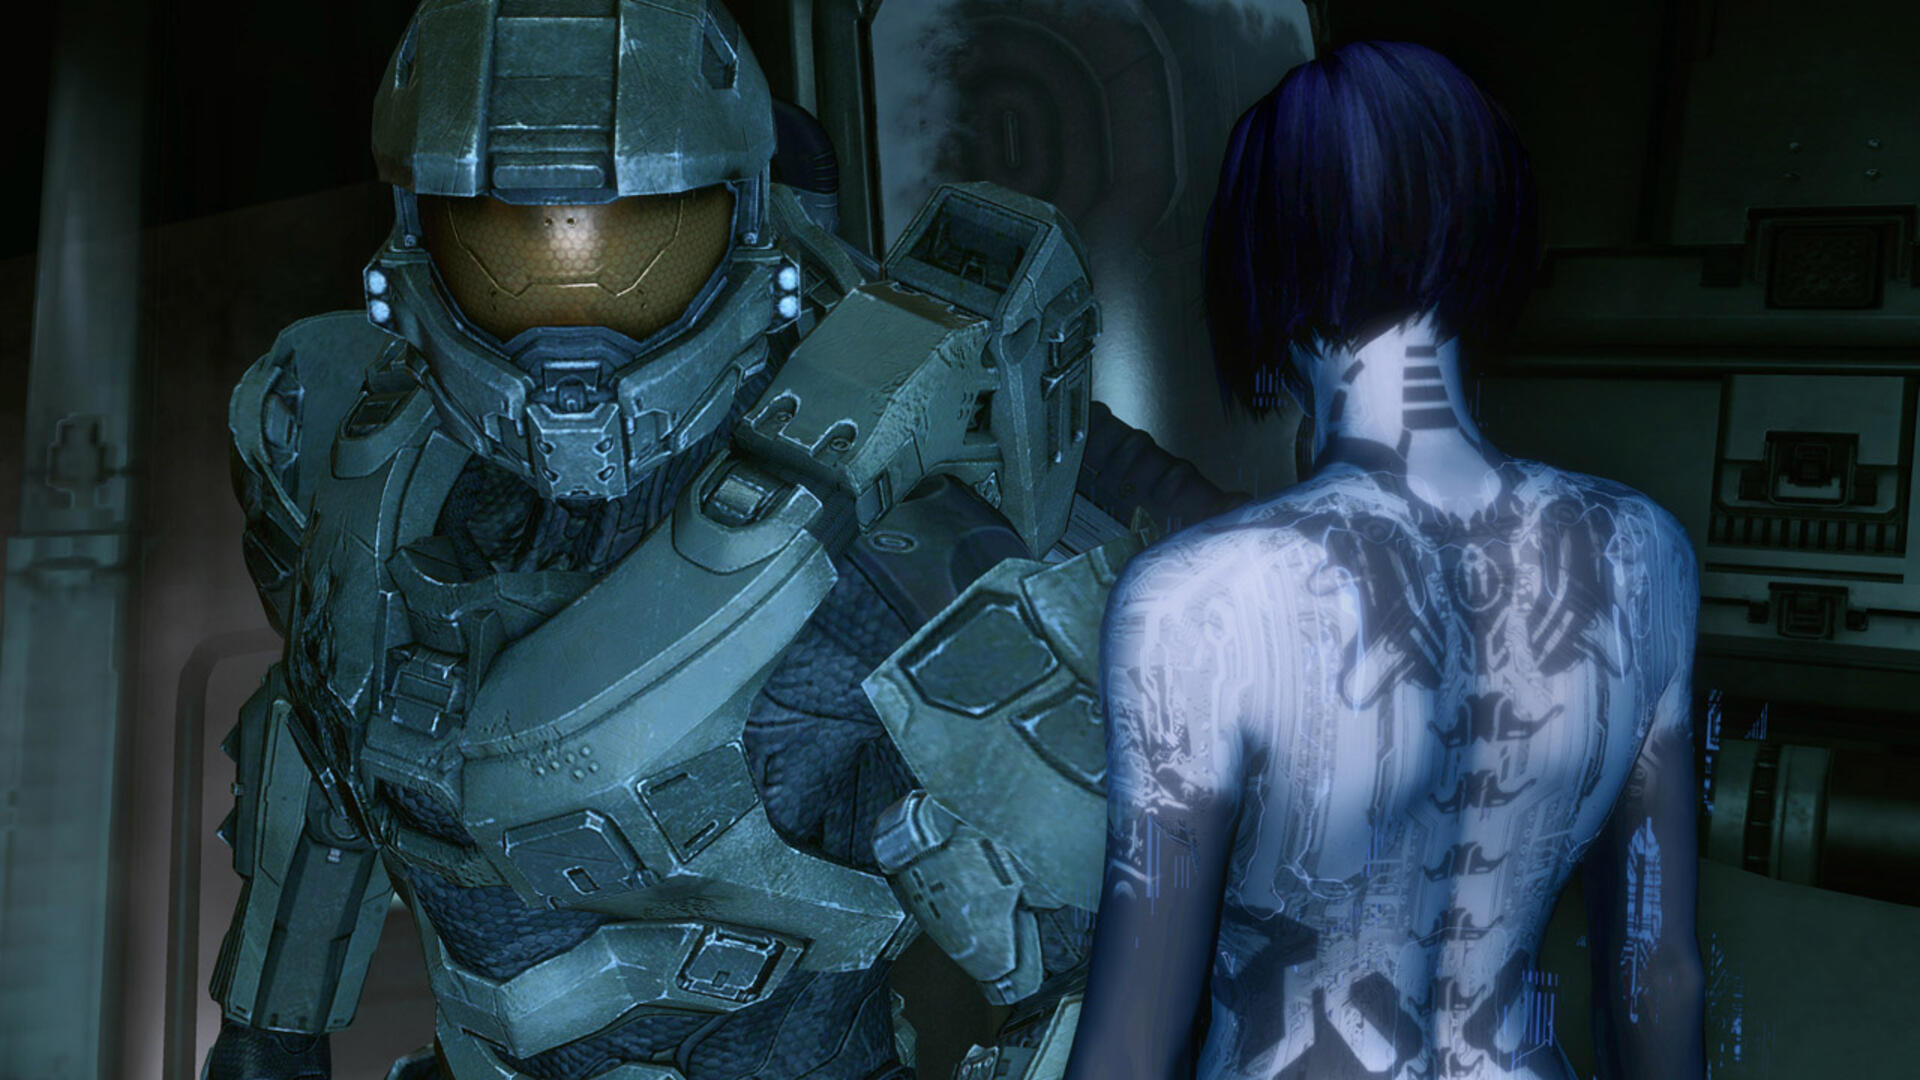 Halo Infinite Might Have RPG Elements, According to New Report